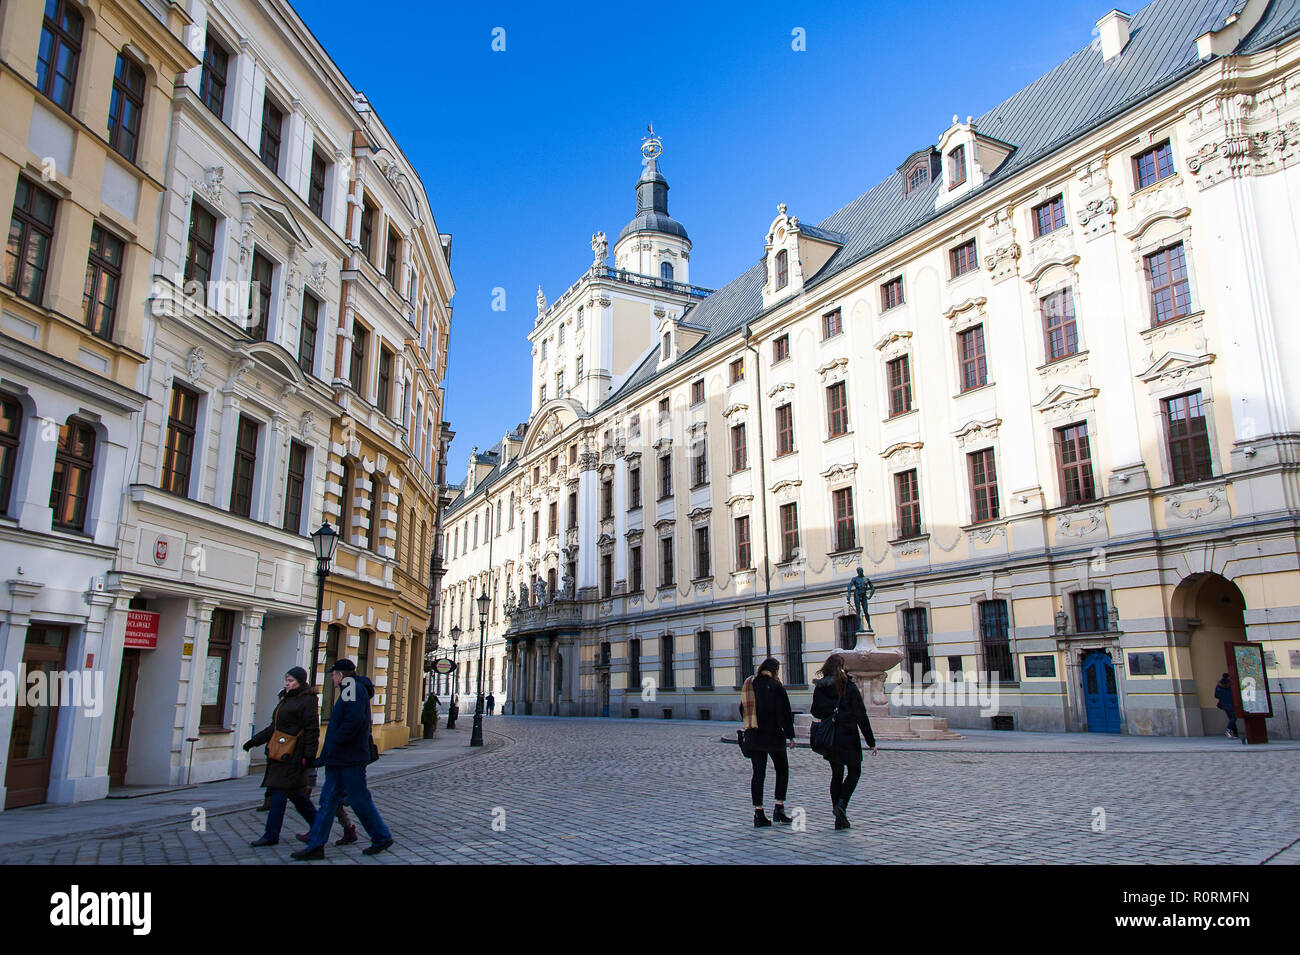 Pedestrains walk along the street in front of the University of Wroclaw, main building.  Magnificent Baroque facade  with clear blue sky background - Stock Image